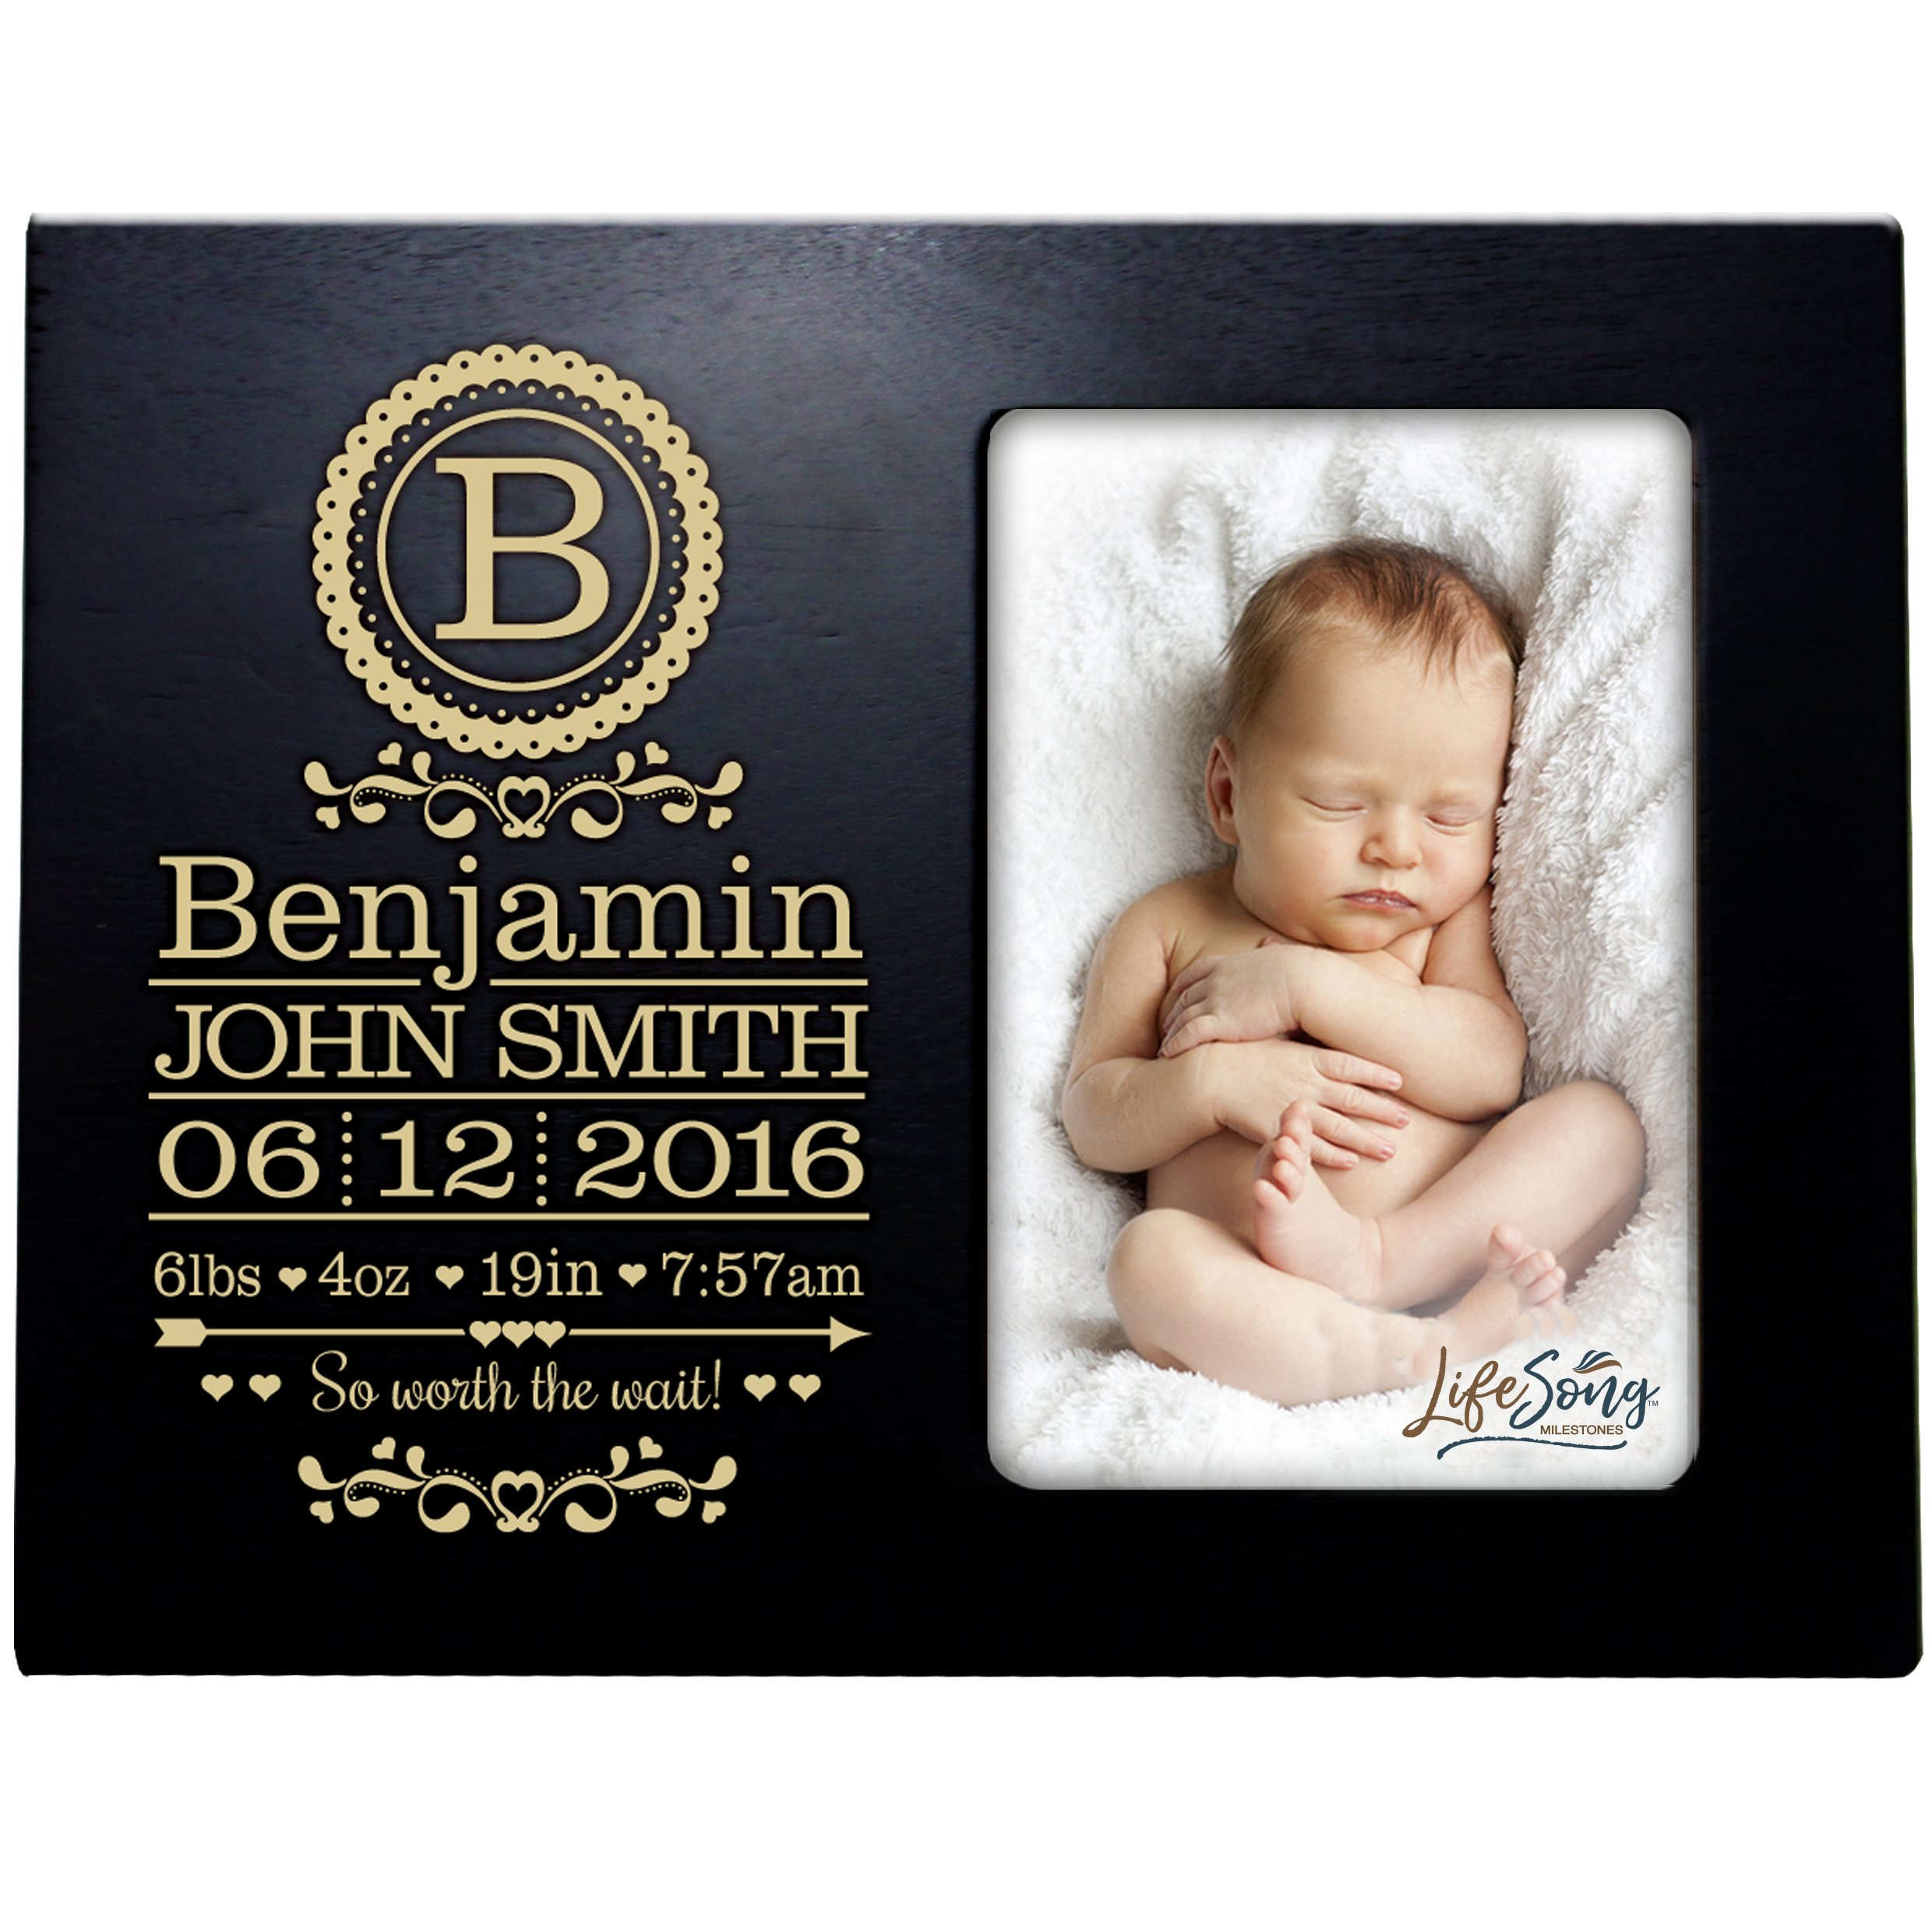 LifeSong Milestones Personalized New Baby Birth Announcement Monogram Picture Frame for Newborn Boys and Girls Custom Engraved Photo Frame for New mom and dad Parents and Grandparents (Black)